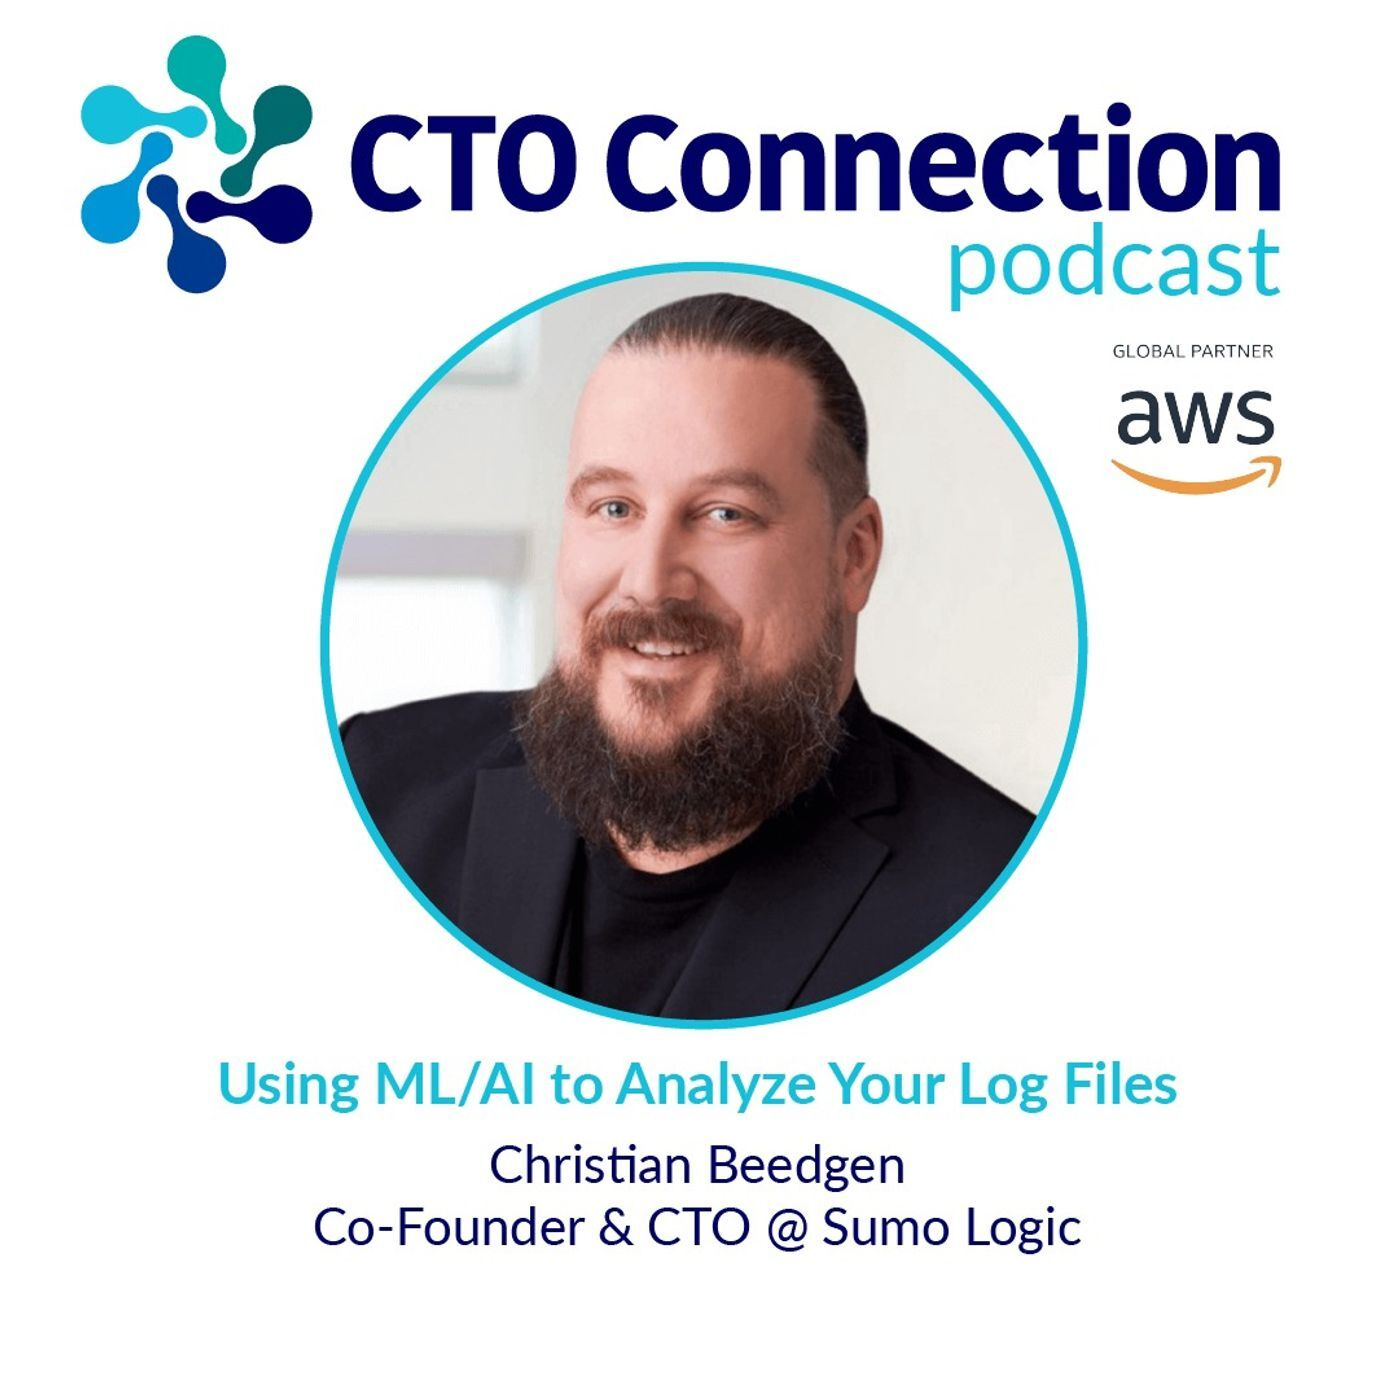 Using ML/AI to Analyze Your Log Files with Christian Beedgen